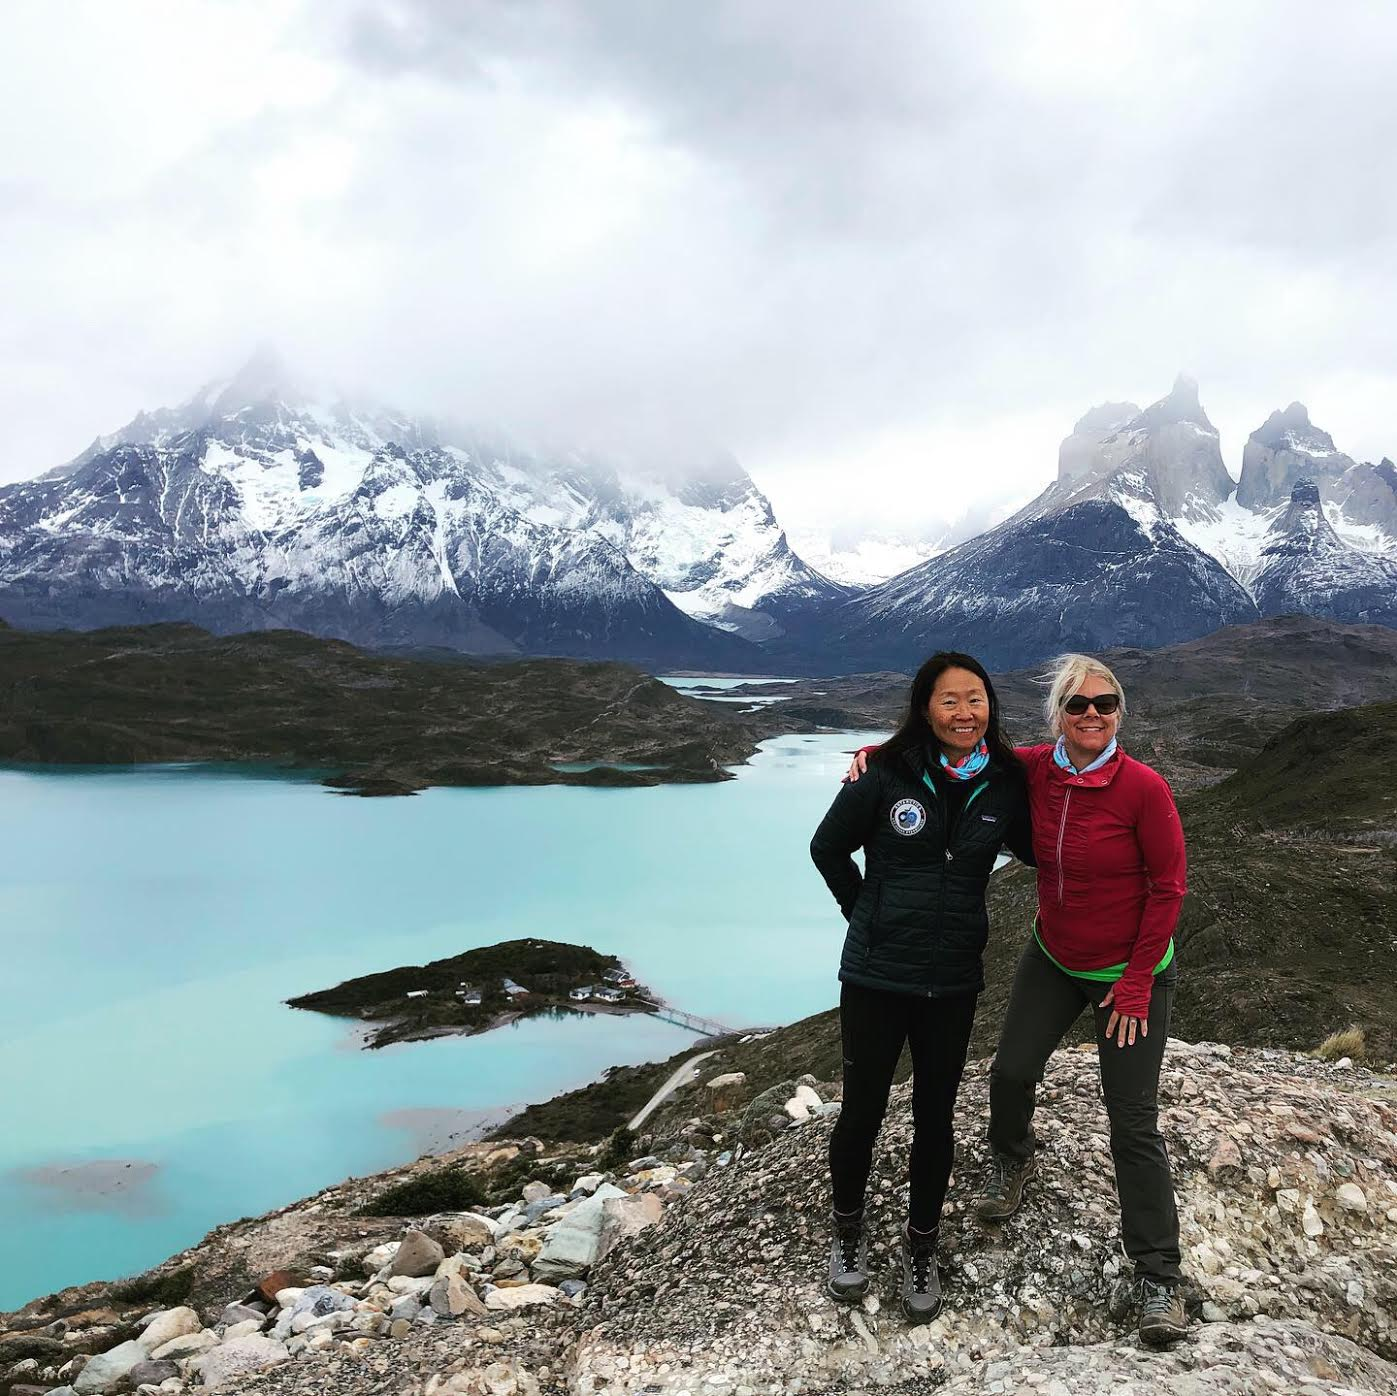 Carolyn Newkirk and her friend Bernadette pose in front of the aqua-blue Lake Pehoé and foggy mountains in Patagonia.